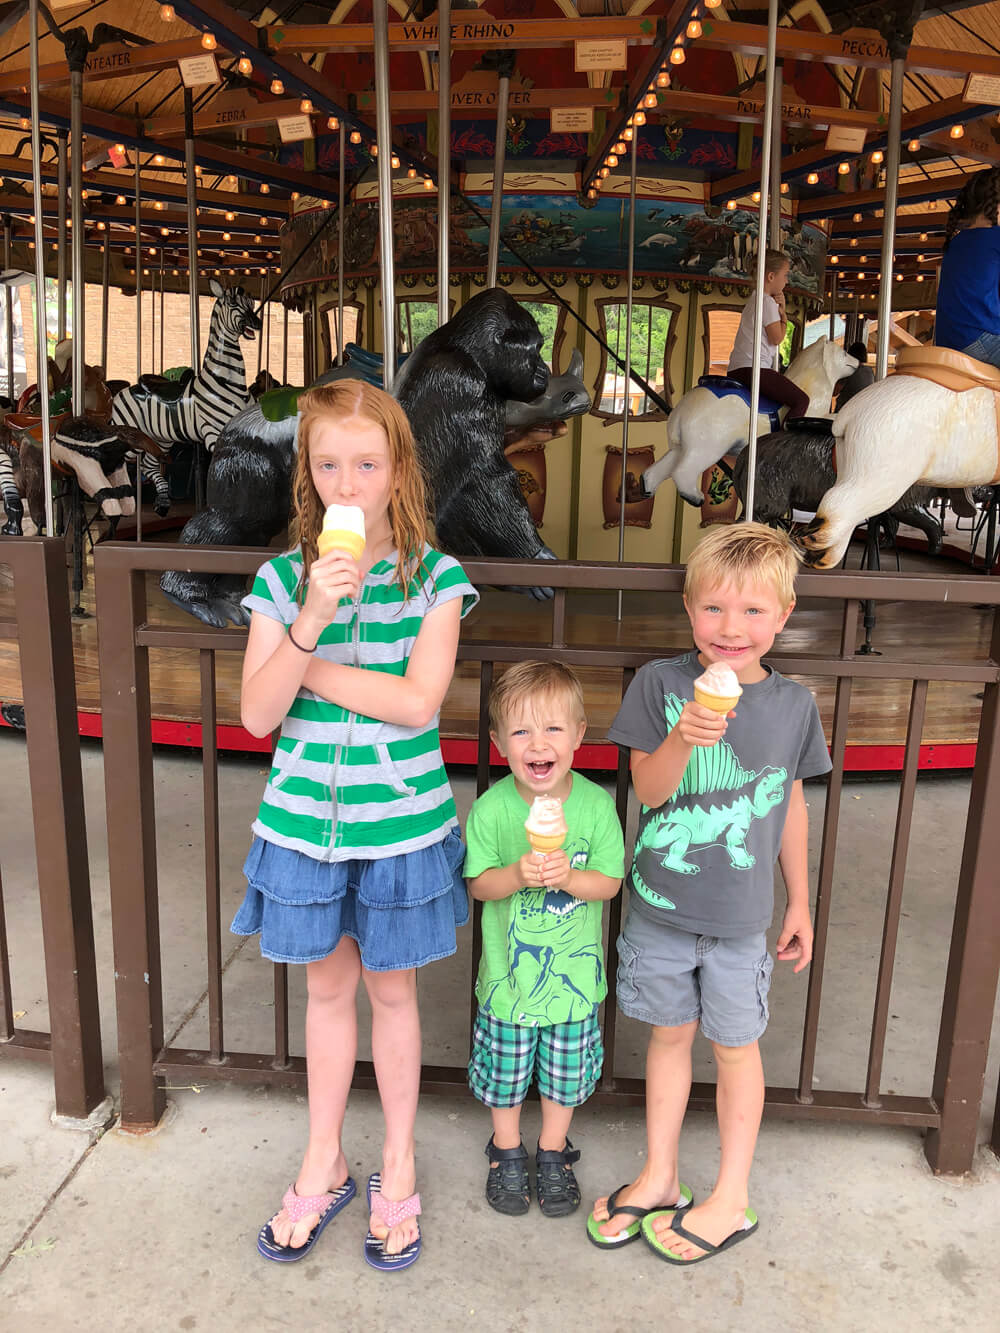 Kids at the zoo in front of carousel eating ice cream cones